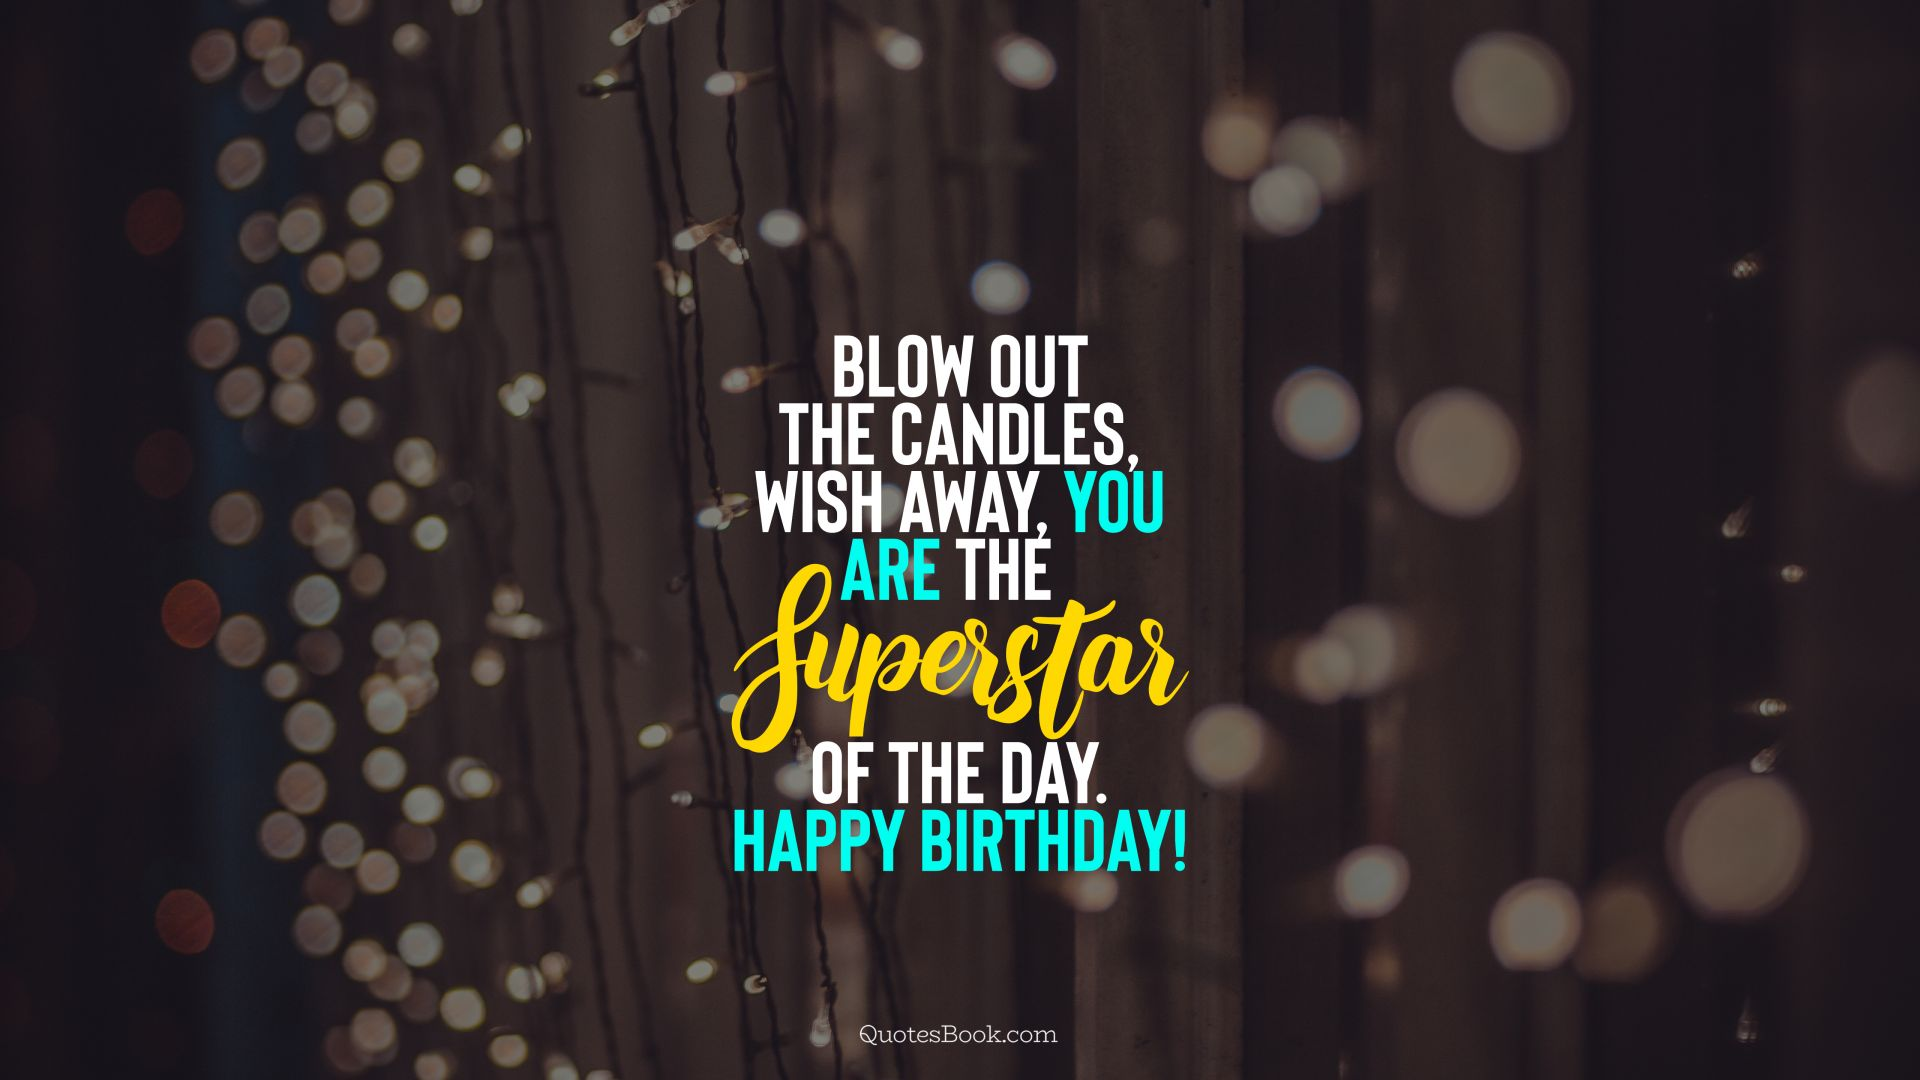 Blow Out The Candles Wish Away You Are Superstar Of Day